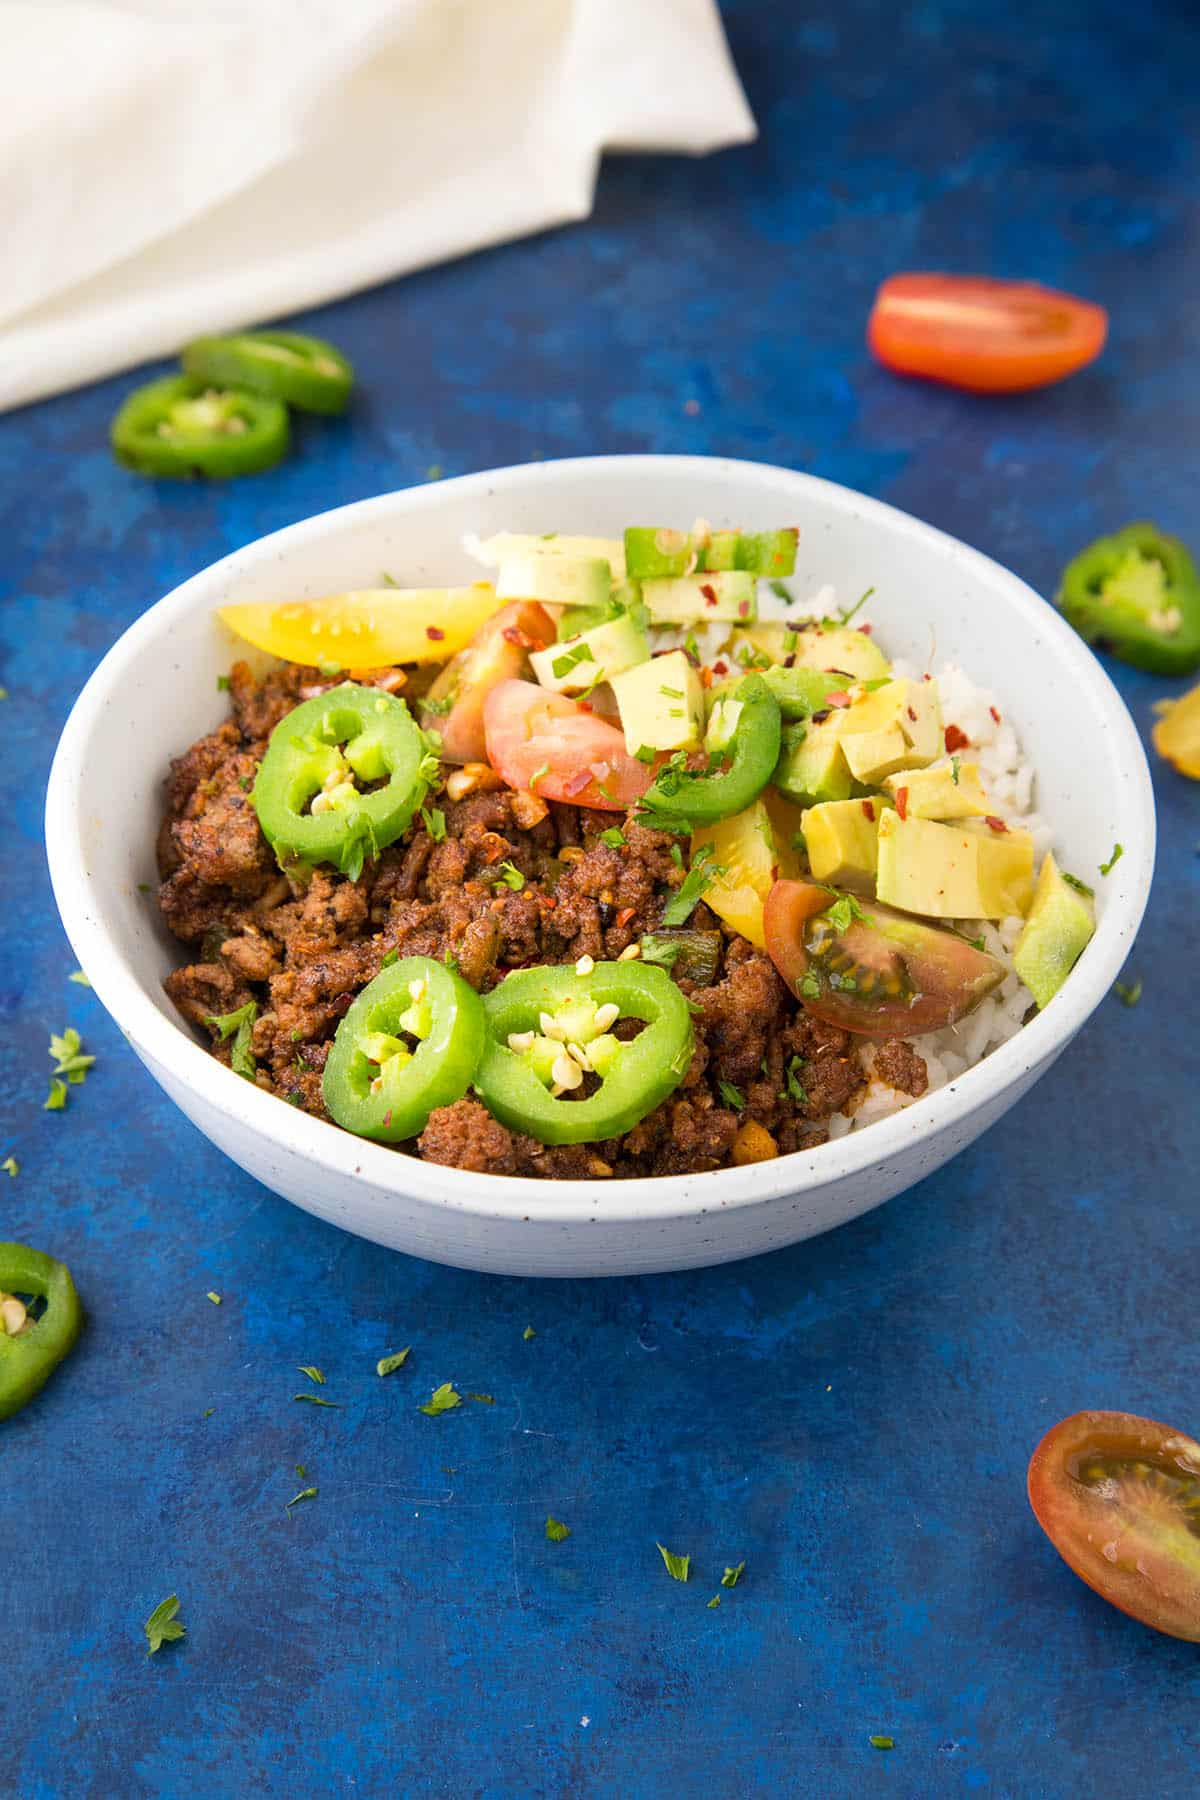 Easy Taco Bowls are ready in 20 minutes. Here is the recipe.